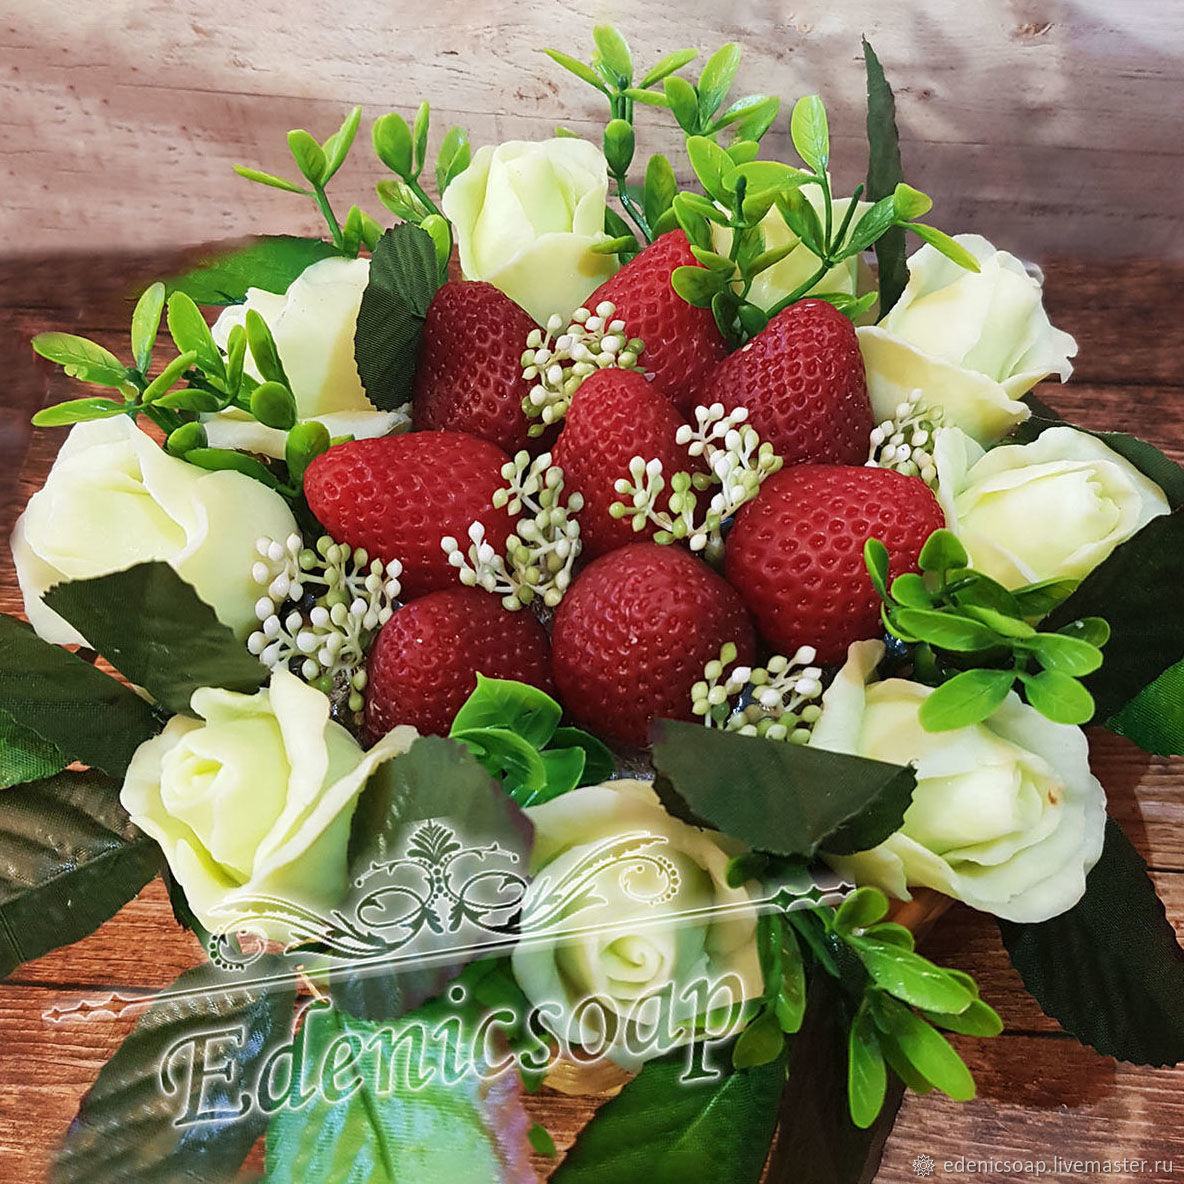 'Flawless beauty ' soap gift flowers strawberry bouquet, Soap, Moscow,  Фото №1